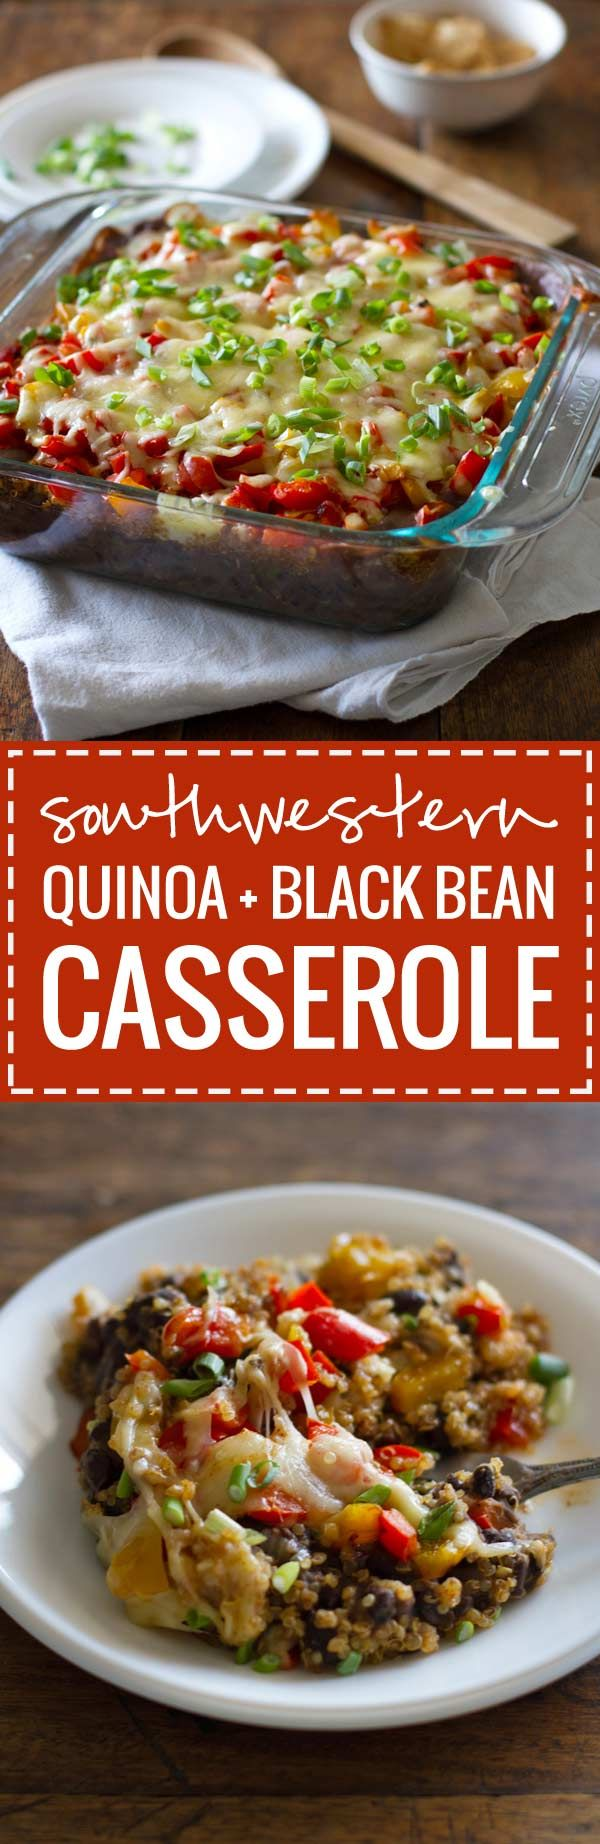 This Southwestern quinoa and black bean casserole is a delicious and healthy way to enjoy Mexican comfort food! Just 240 calories per serving.